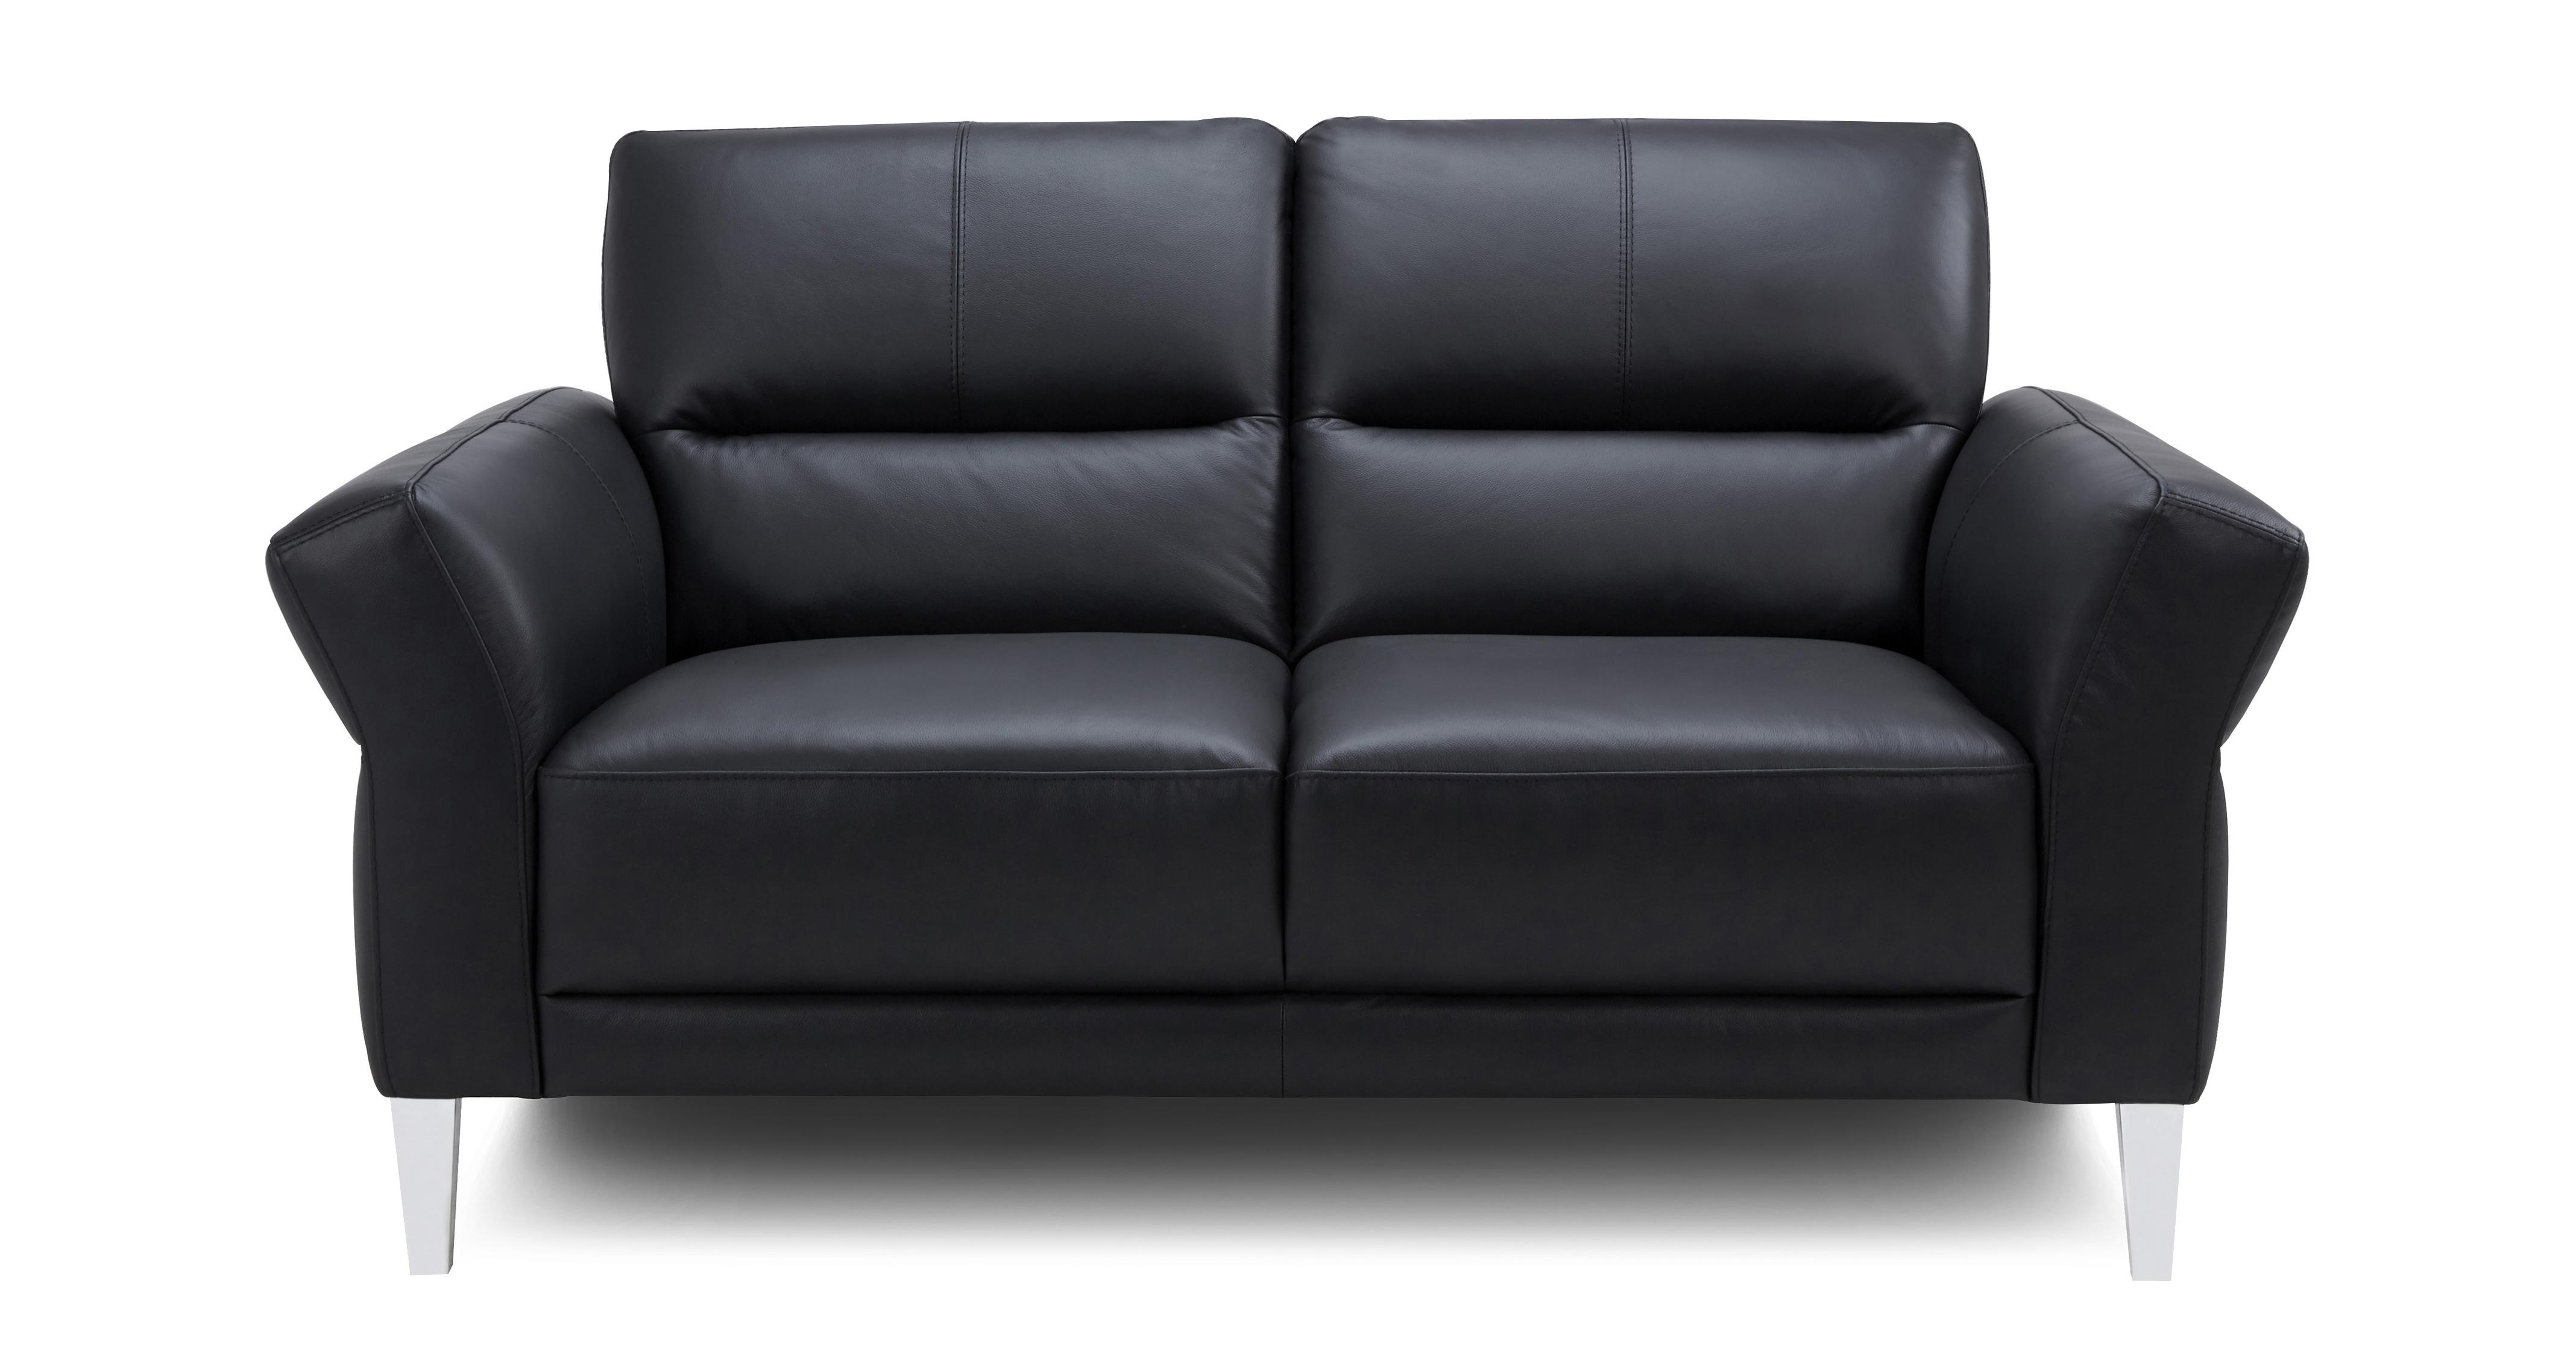 Marvelous Jett 2 Seater Sofa Caraccident5 Cool Chair Designs And Ideas Caraccident5Info